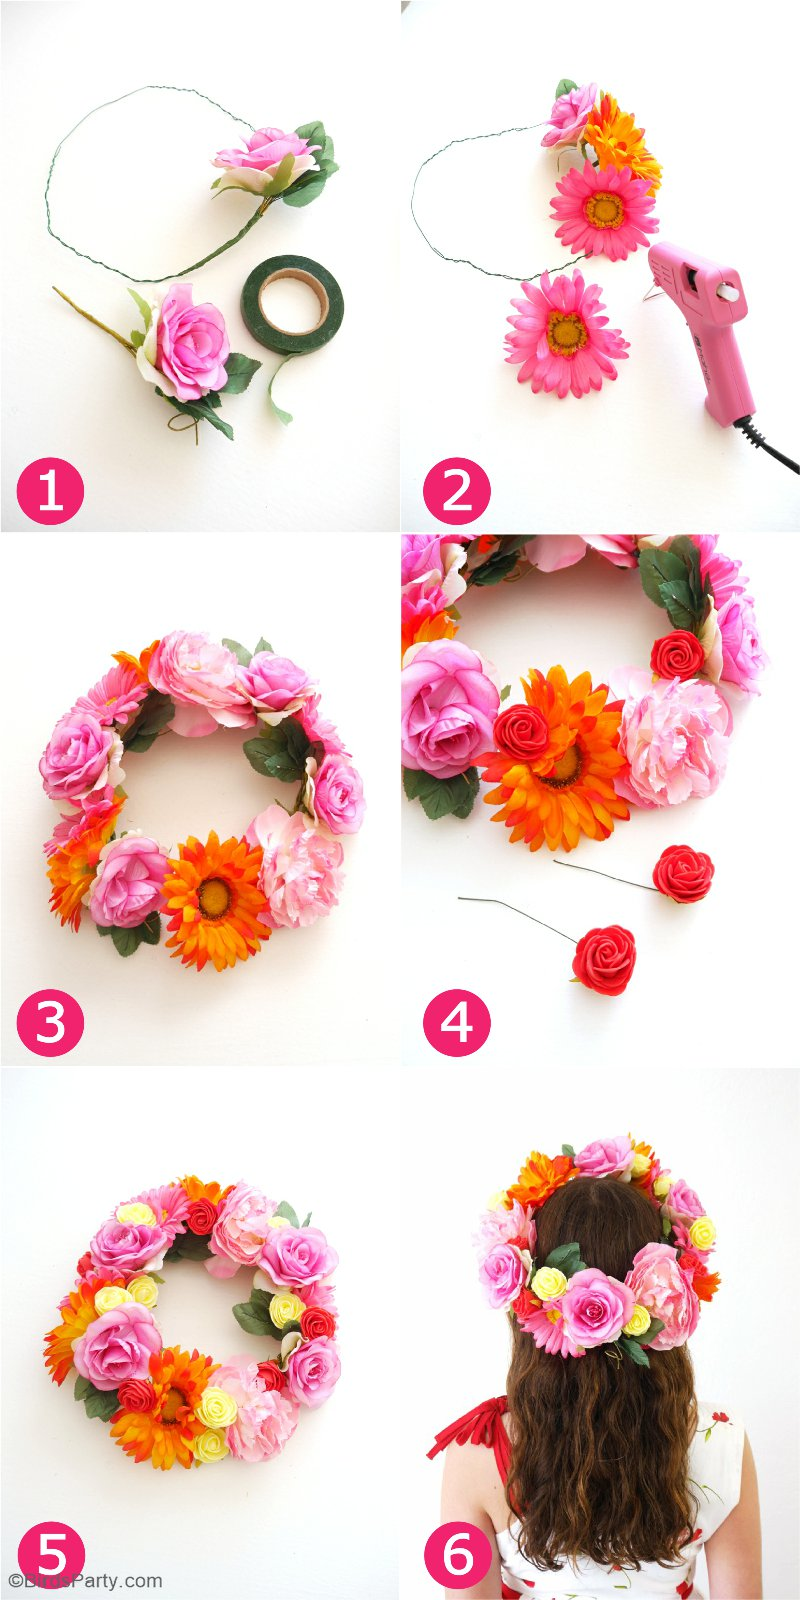 DIY Pretty & Easy Flower Crowns - learn to craft these fashion accessories for your Cinco de Mayo celebrations, weddings or Mother's Day party! by BIrdsParty.com @BirdsParty